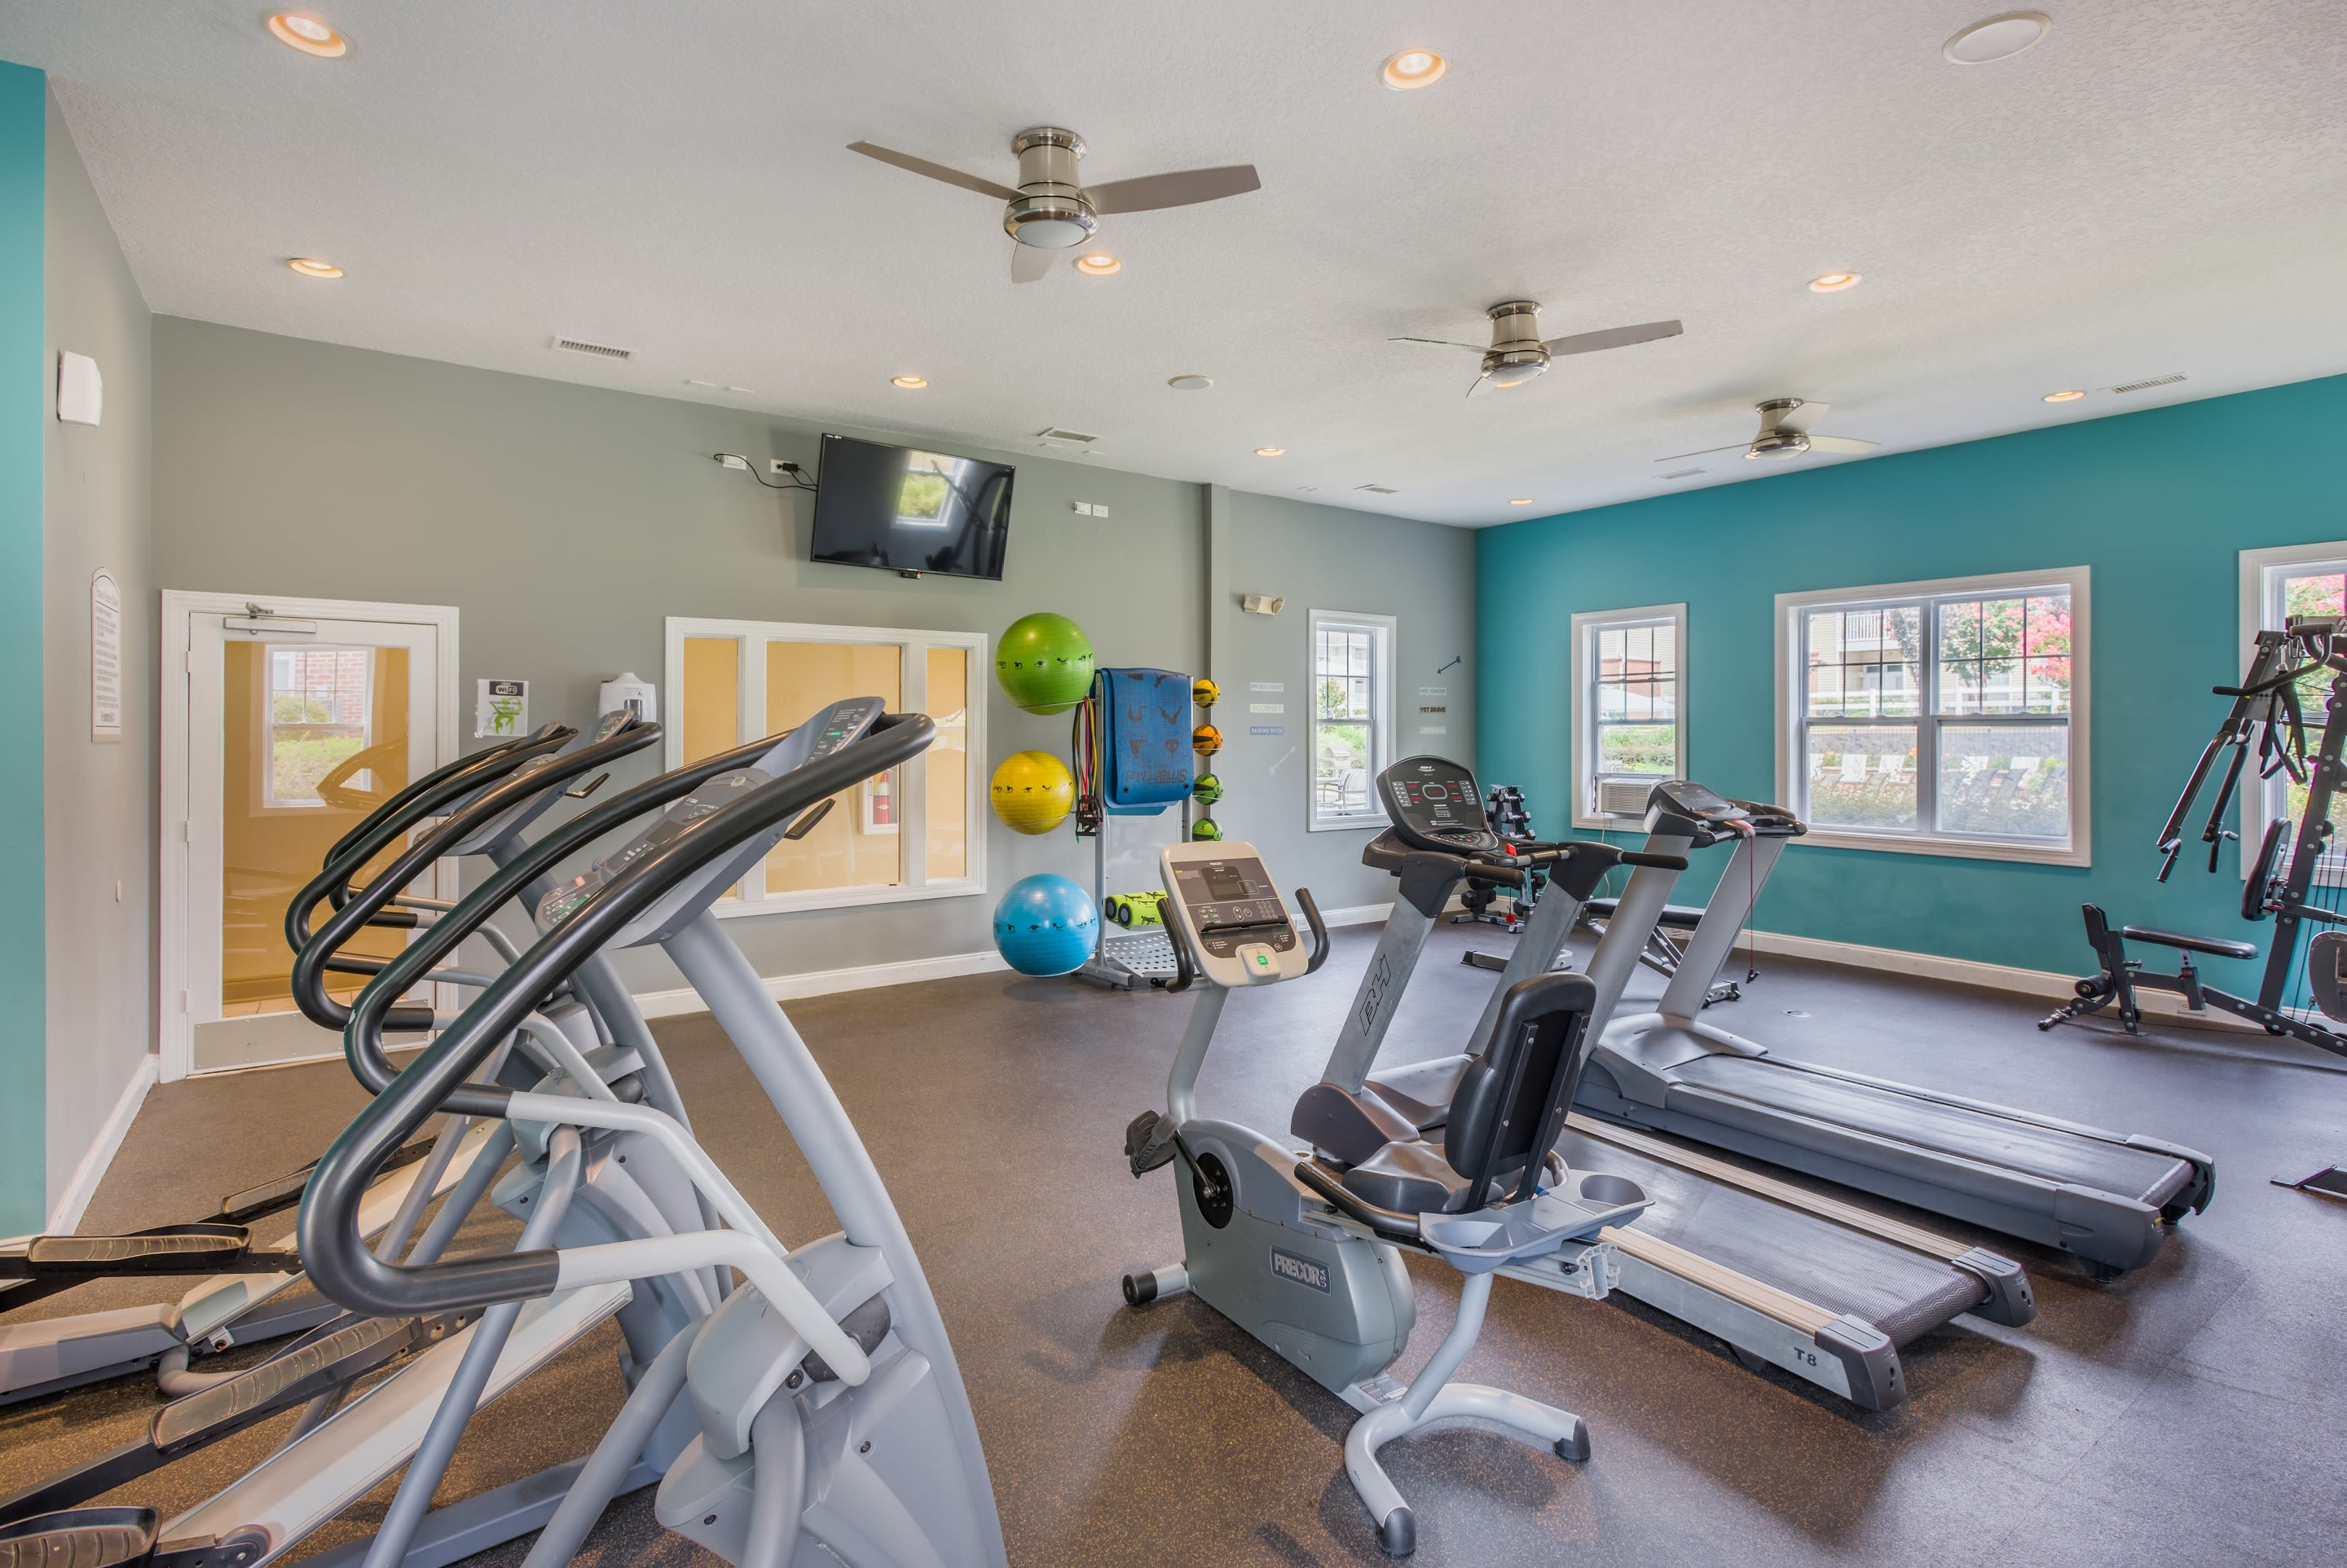 Enjoy our modern apartments fitness center at The Avant at Steele Creek in Charlotte, North Carolina